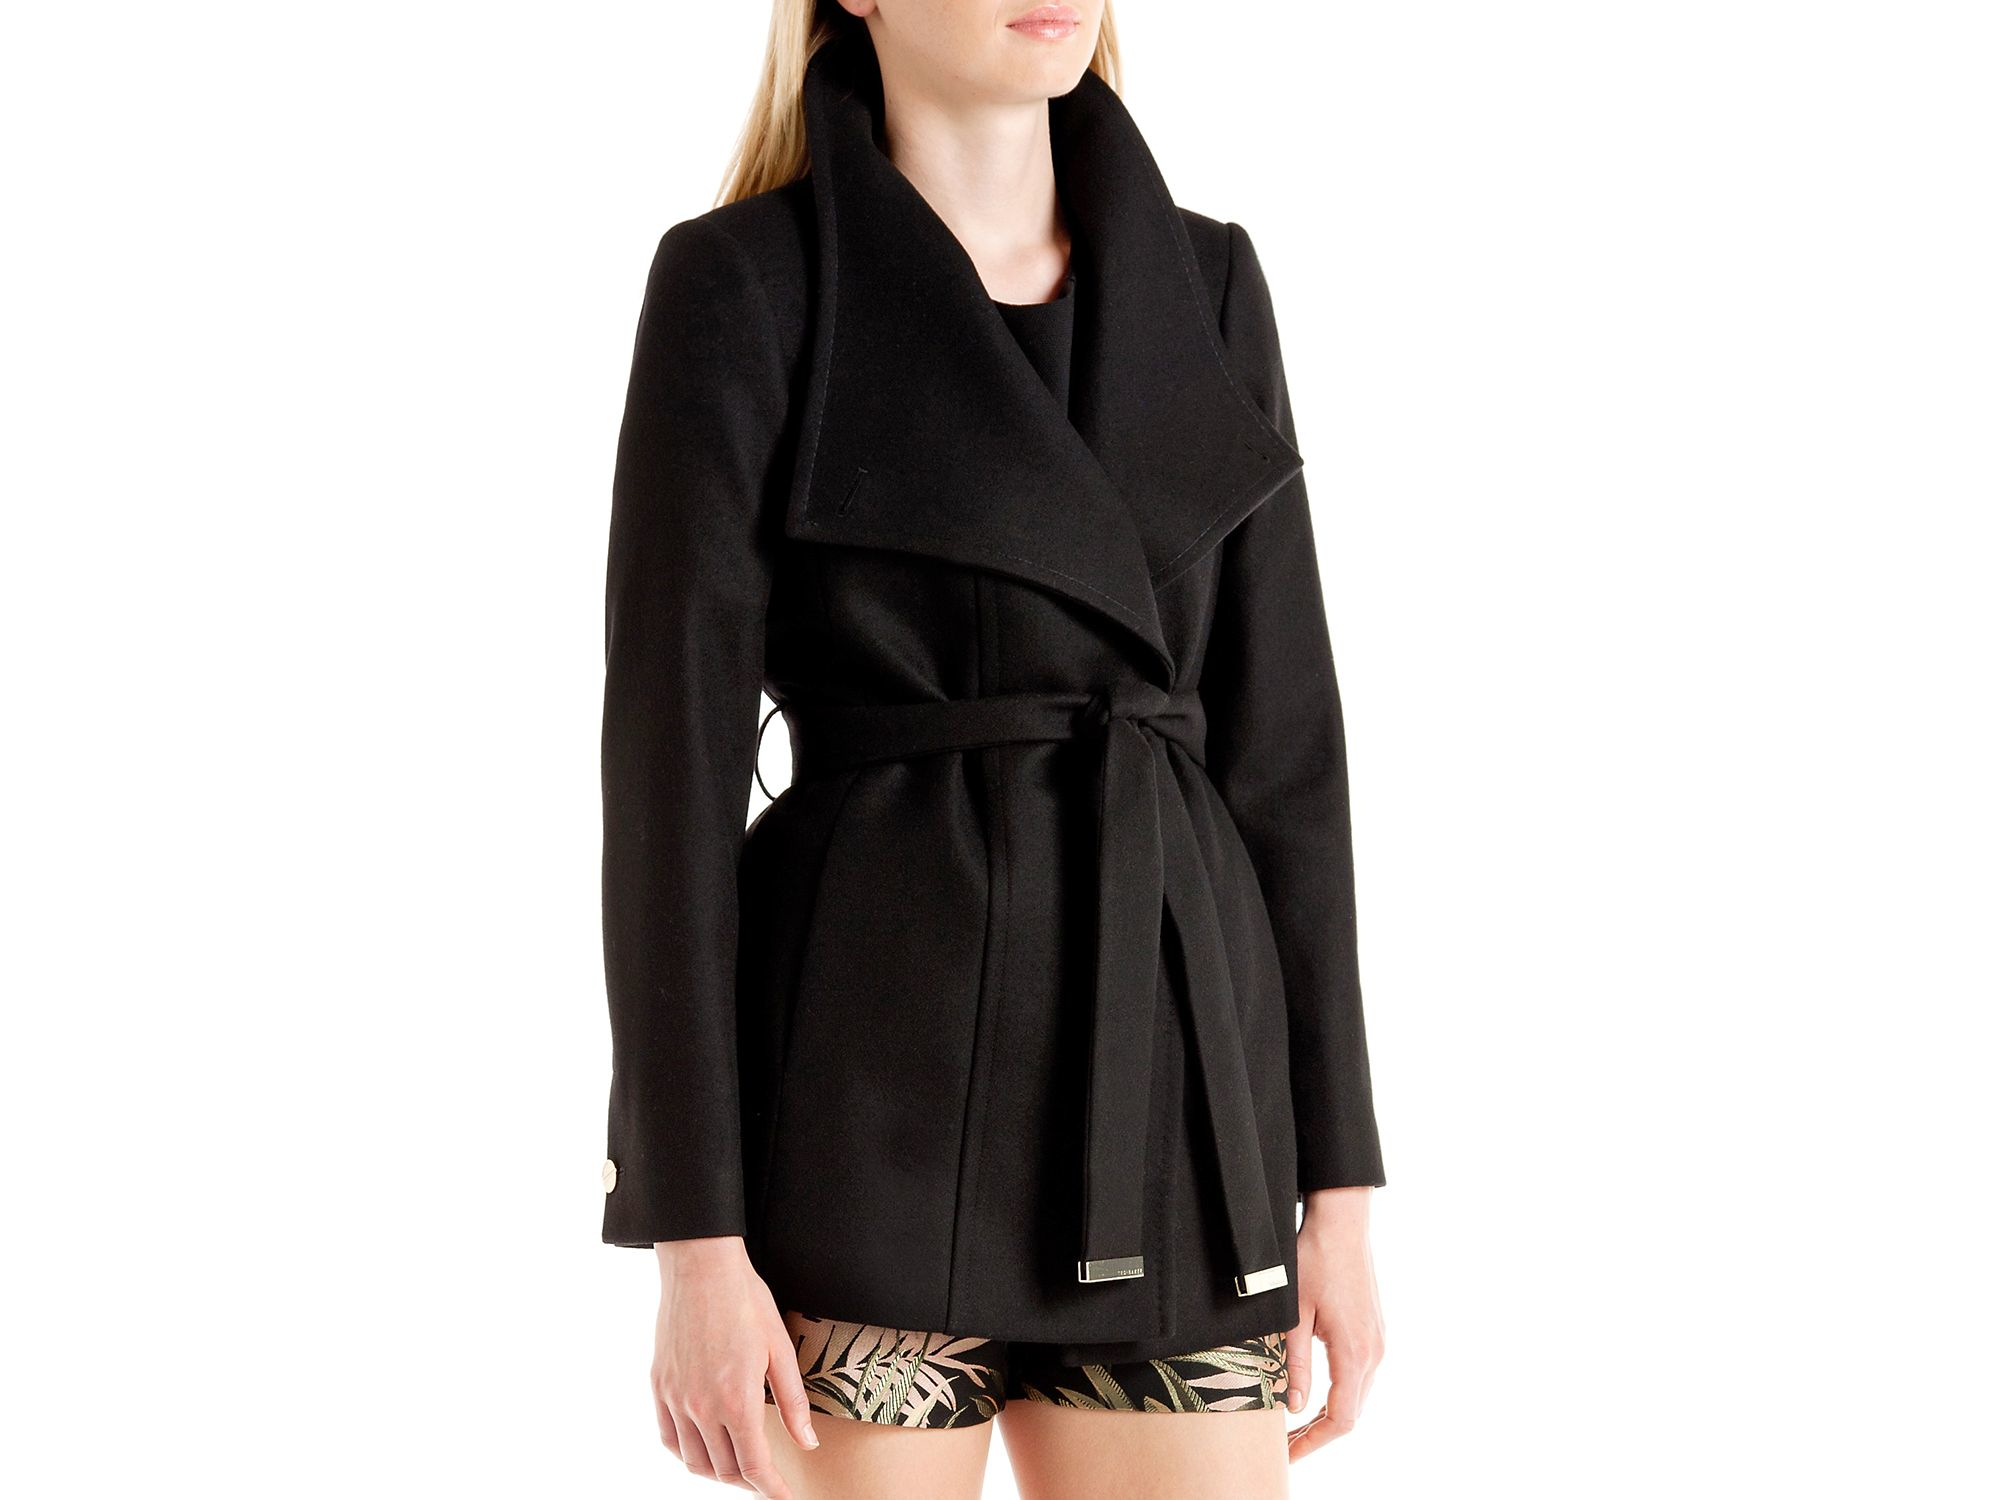 Ted baker Paria Short Wrap Coat in Black | Lyst